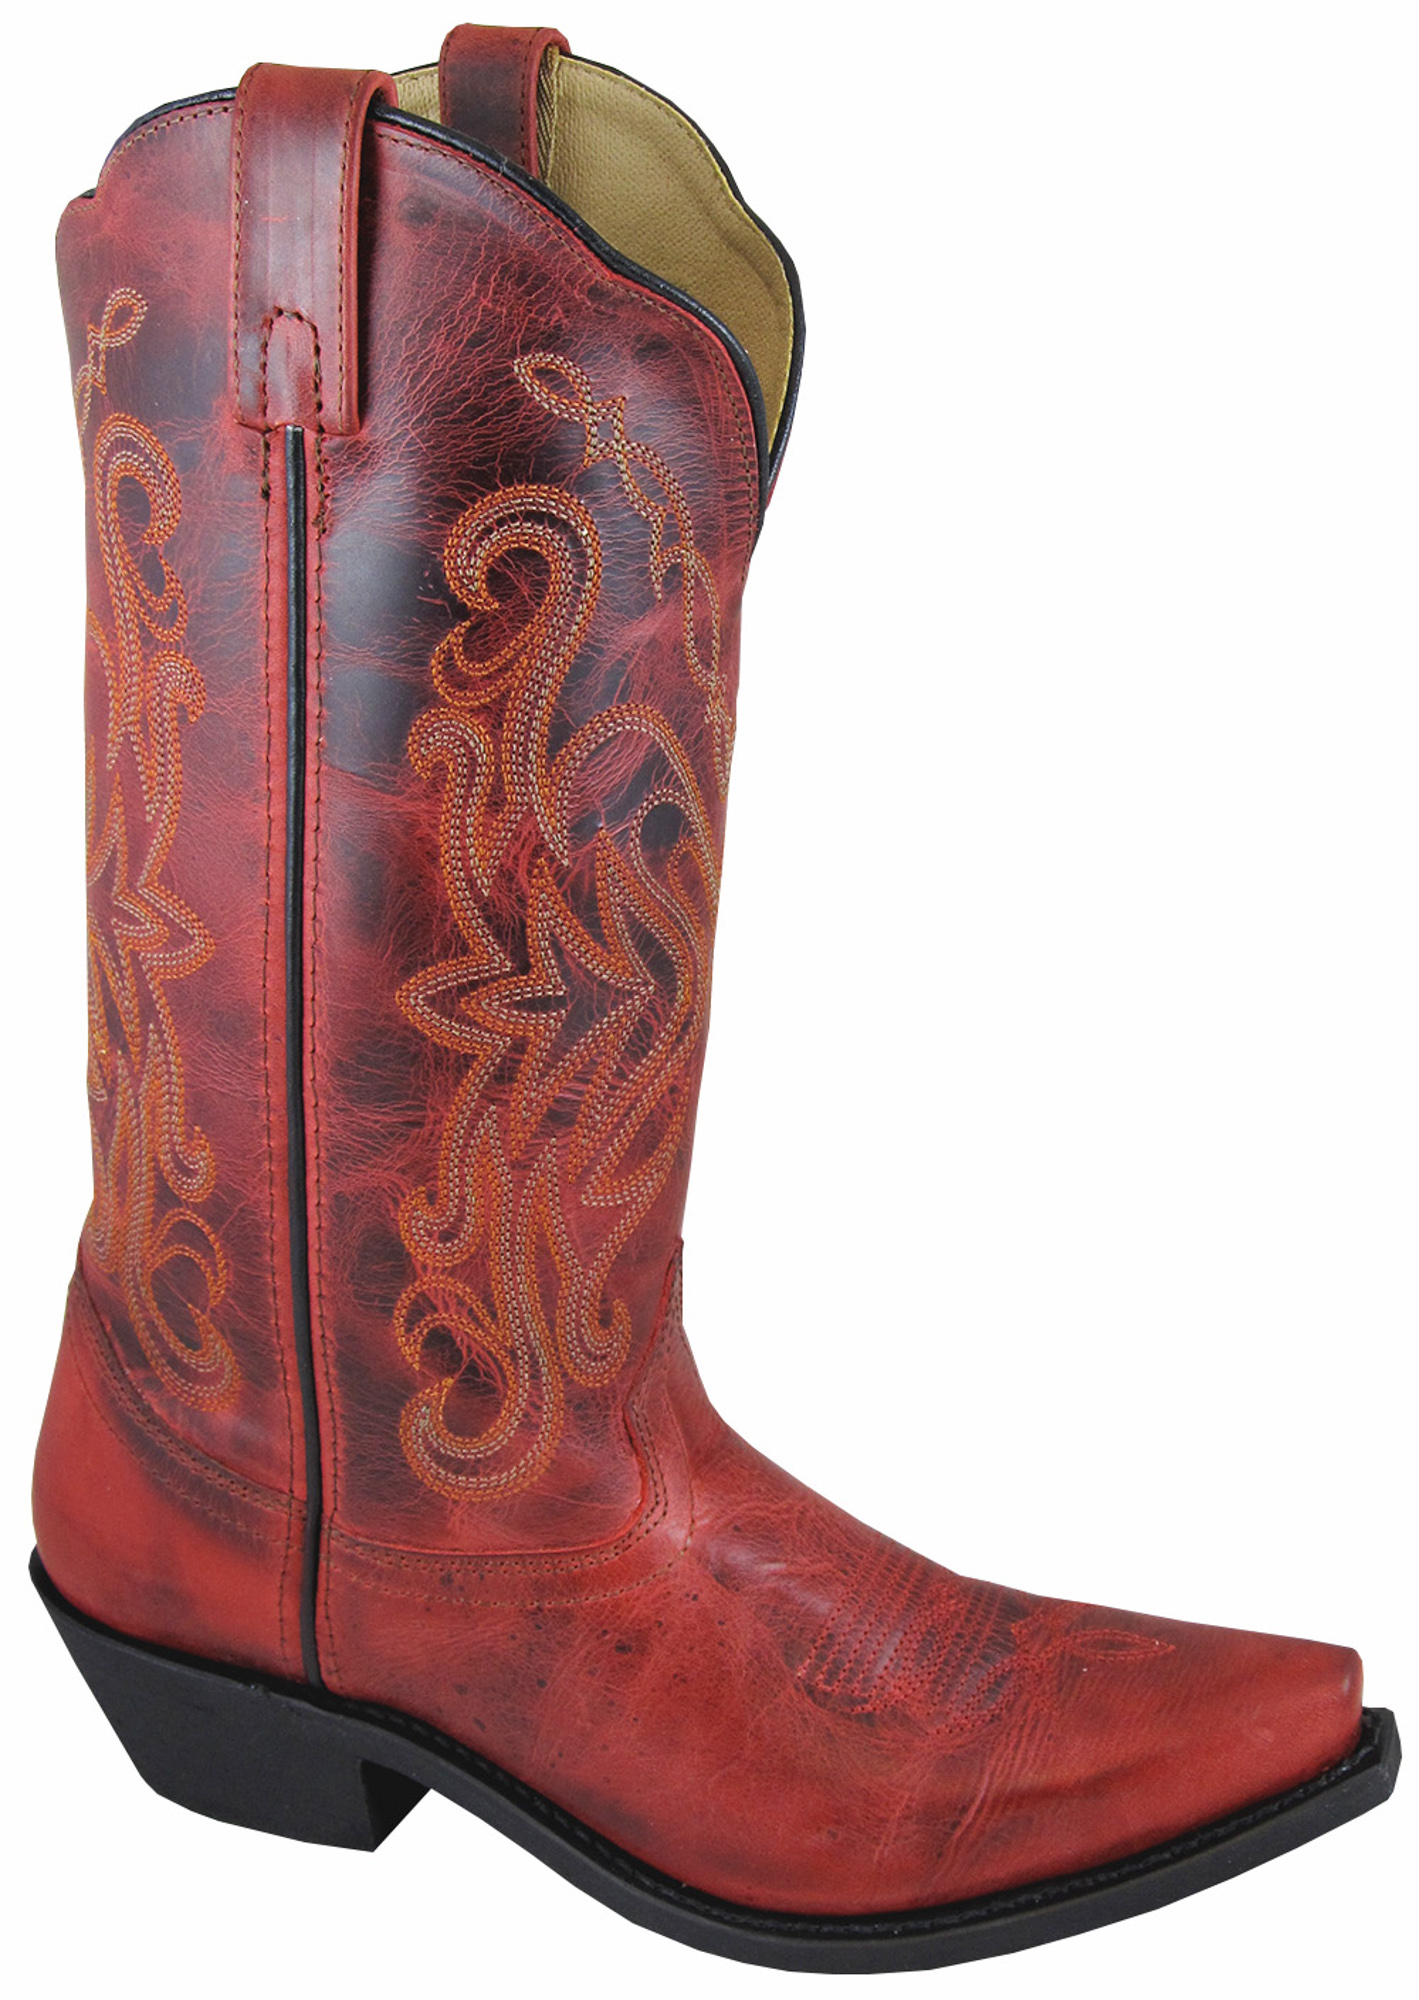 Popular Ariat Western Boots Womens Unbridled Leather Cowboy Powder Brown/Red 10010198 | EBay